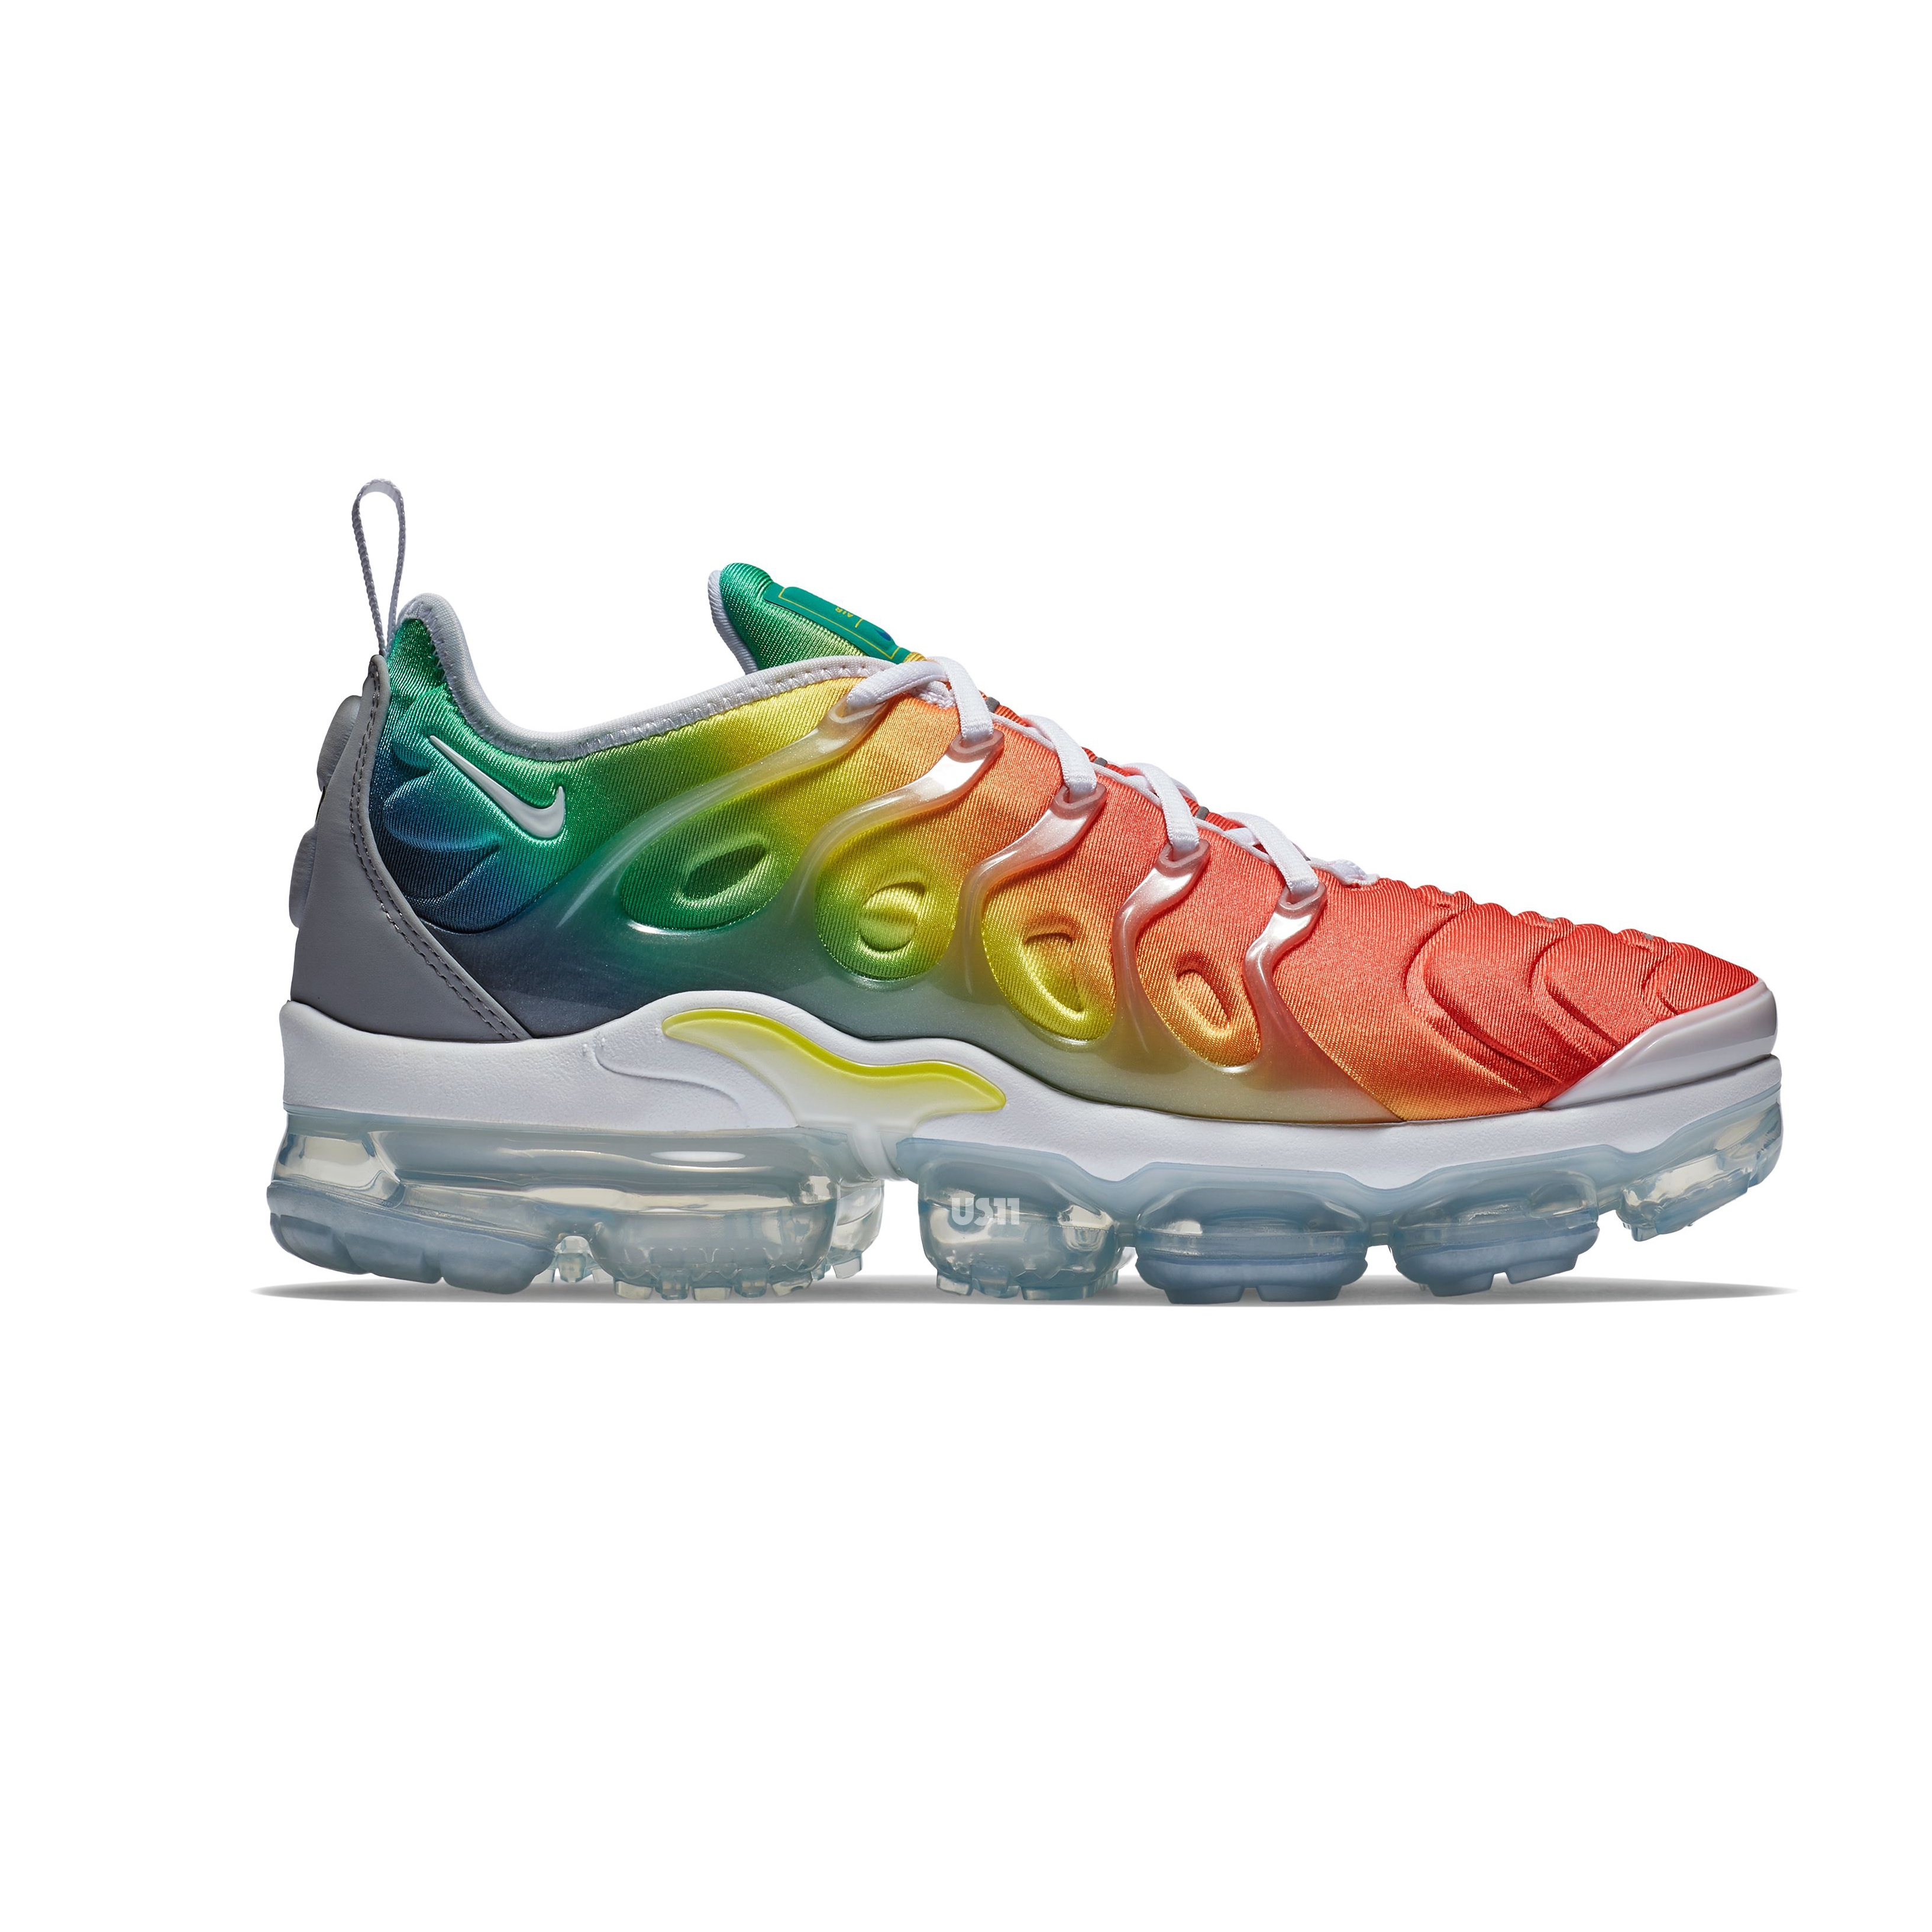 quality design 772a6 f10ad ... best price nike air vapormax plus whitewhite neptune green dynamic  yellow 2 55e45 6d835